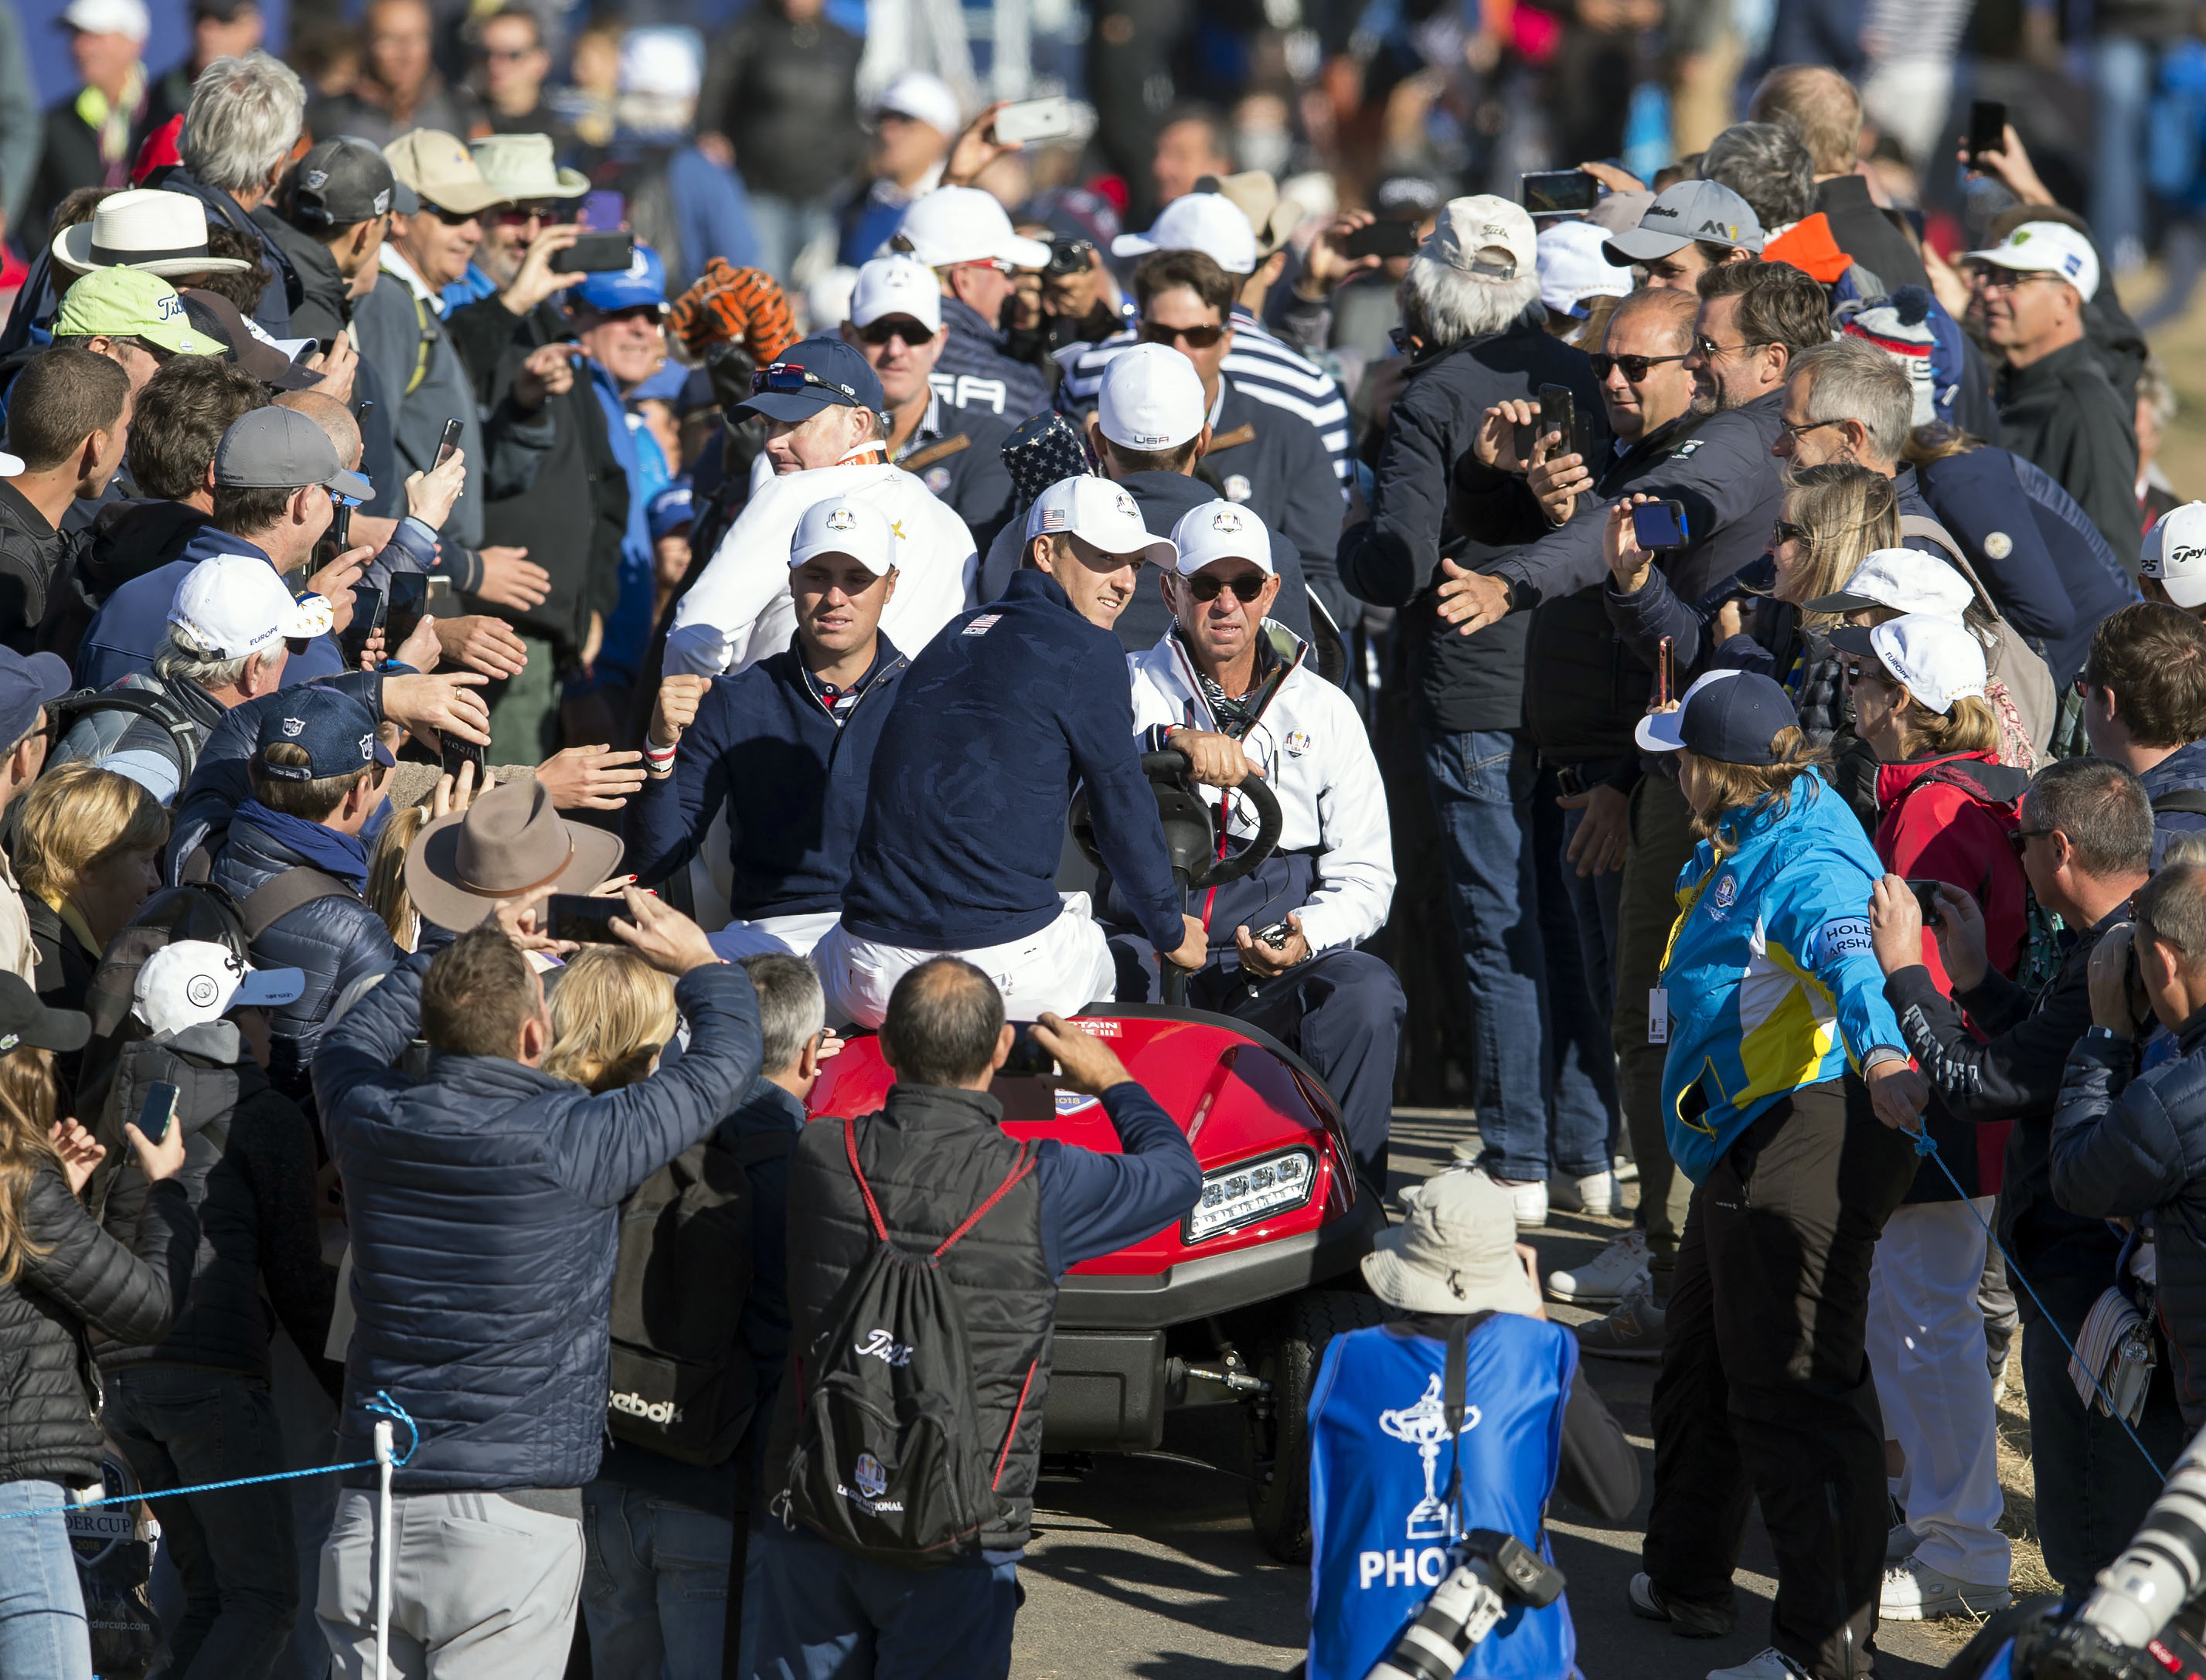 Sep 26, 2018; Paris, FRA; Jordan Spieth and Justin Thomas make their way by buggy to the 10th tee during a Ryder Cup practice round at Le Golf National. Mandatory Credit: Ian Rutherford-USA TODAY Sports